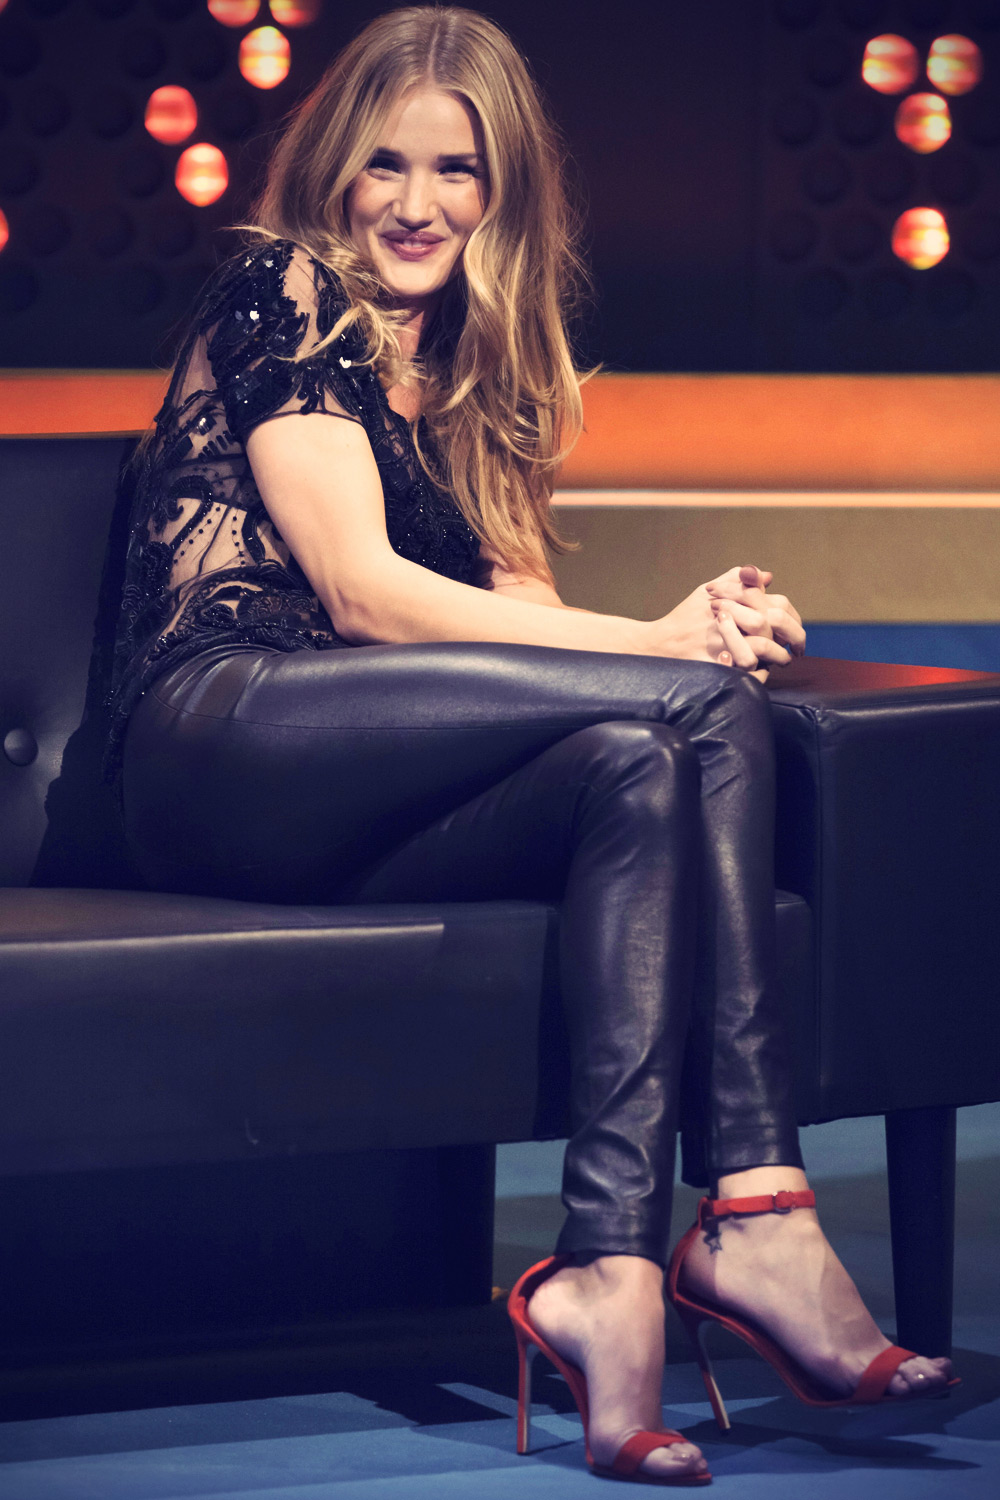 Rosie Huntington-Whitely at The Jonathan Ross Show